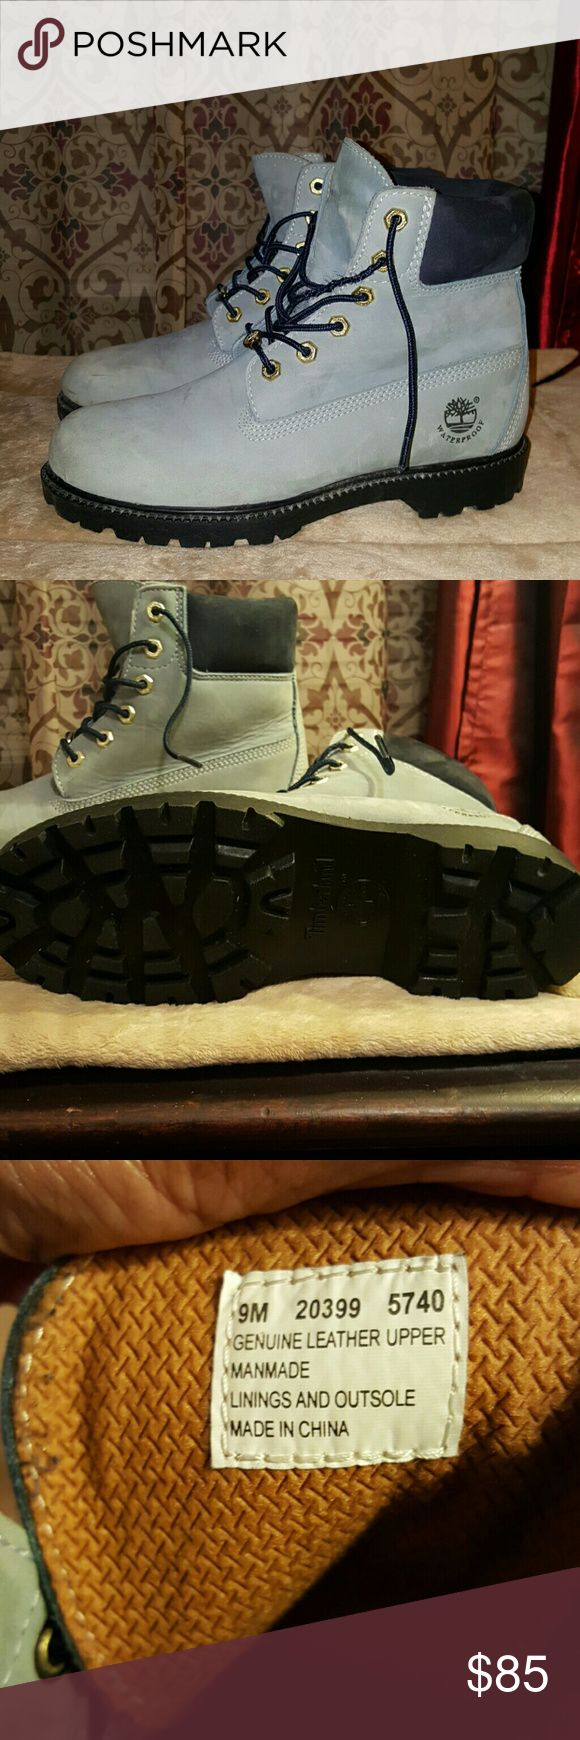 Timberland boots Powder Blue Timberland Boots. Excellent condition, almost brand new,  only worn once. Woman's 9M. Timberland Shoes Lace Up Boots